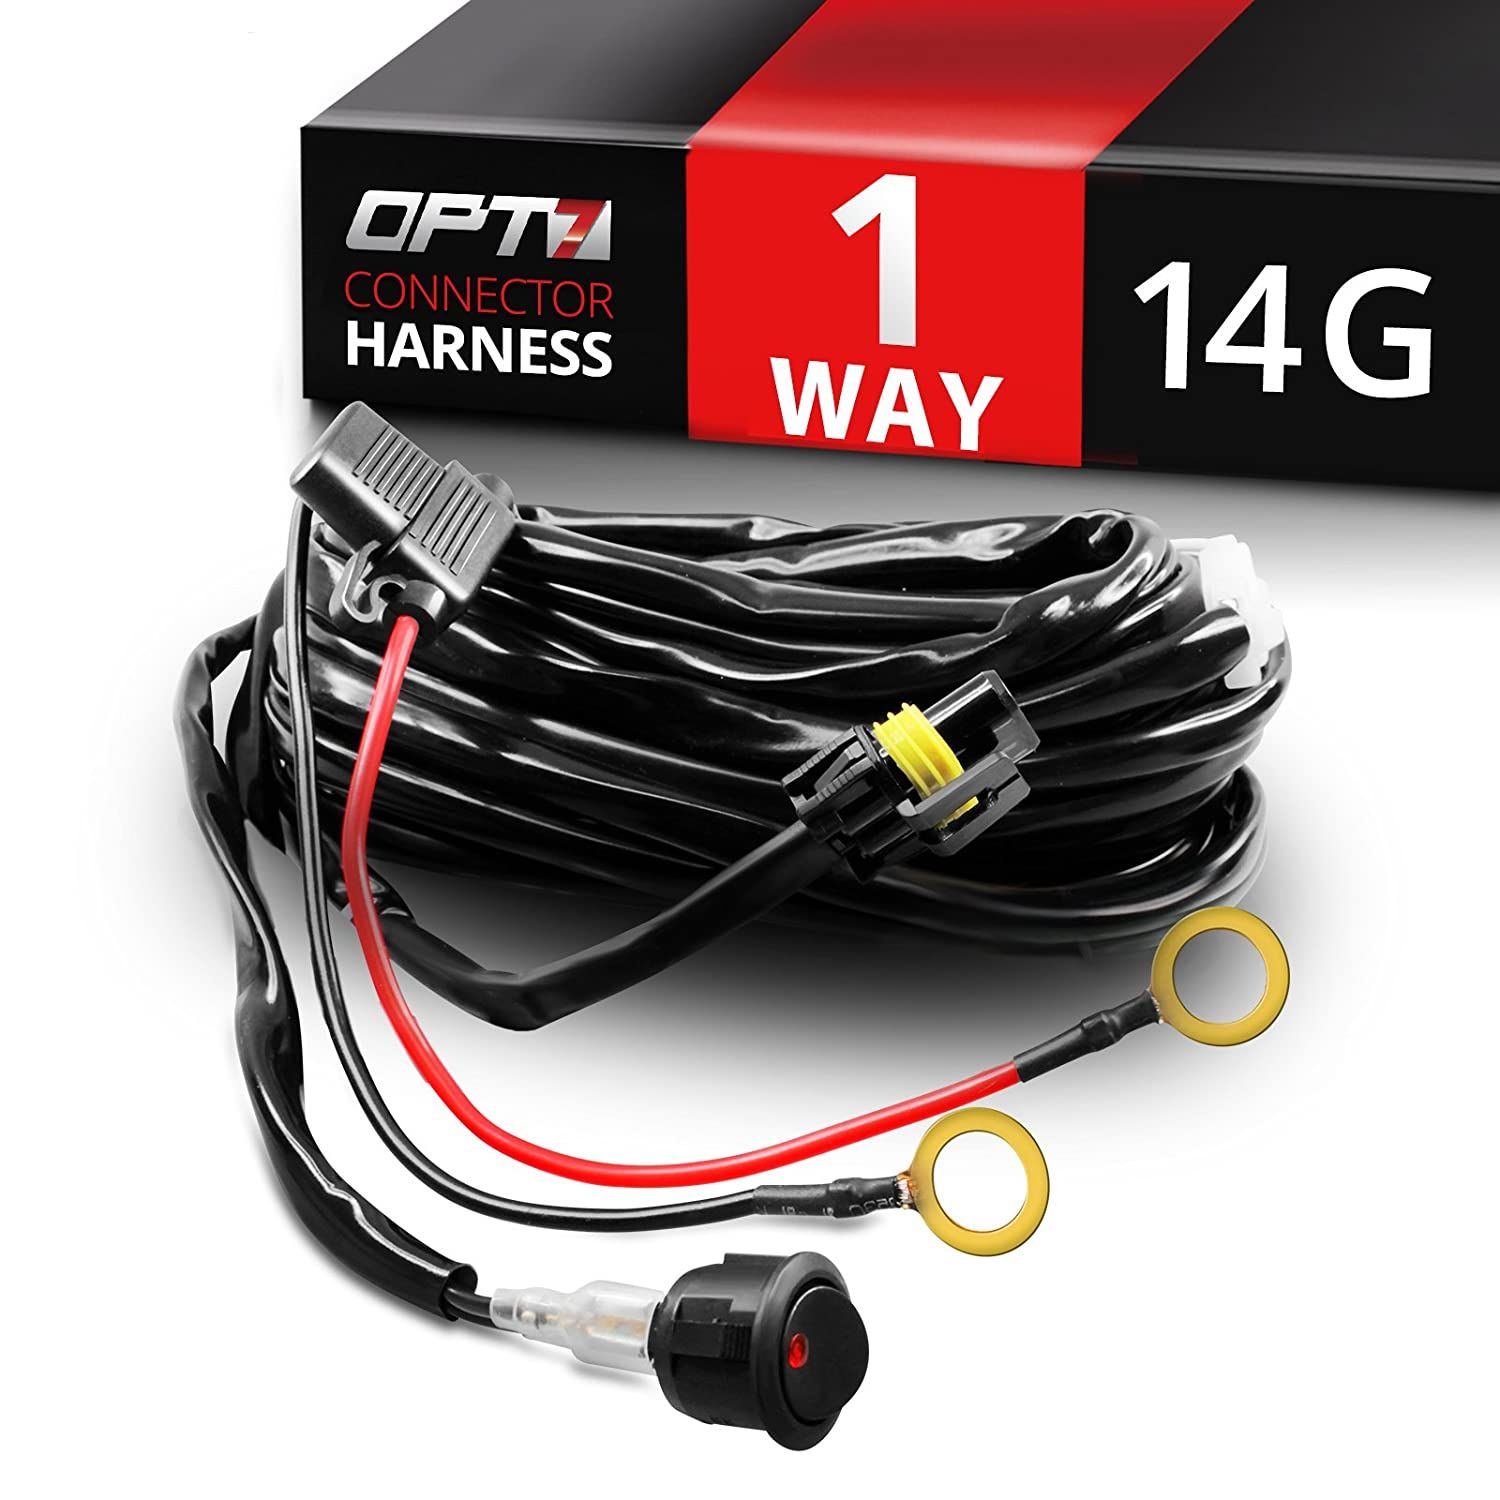 71vzZ28pwbL._SL1500_ amazon com opt7 led light bar wiring harness 14 gauge 380w wiring off road wiring harness at mifinder.co